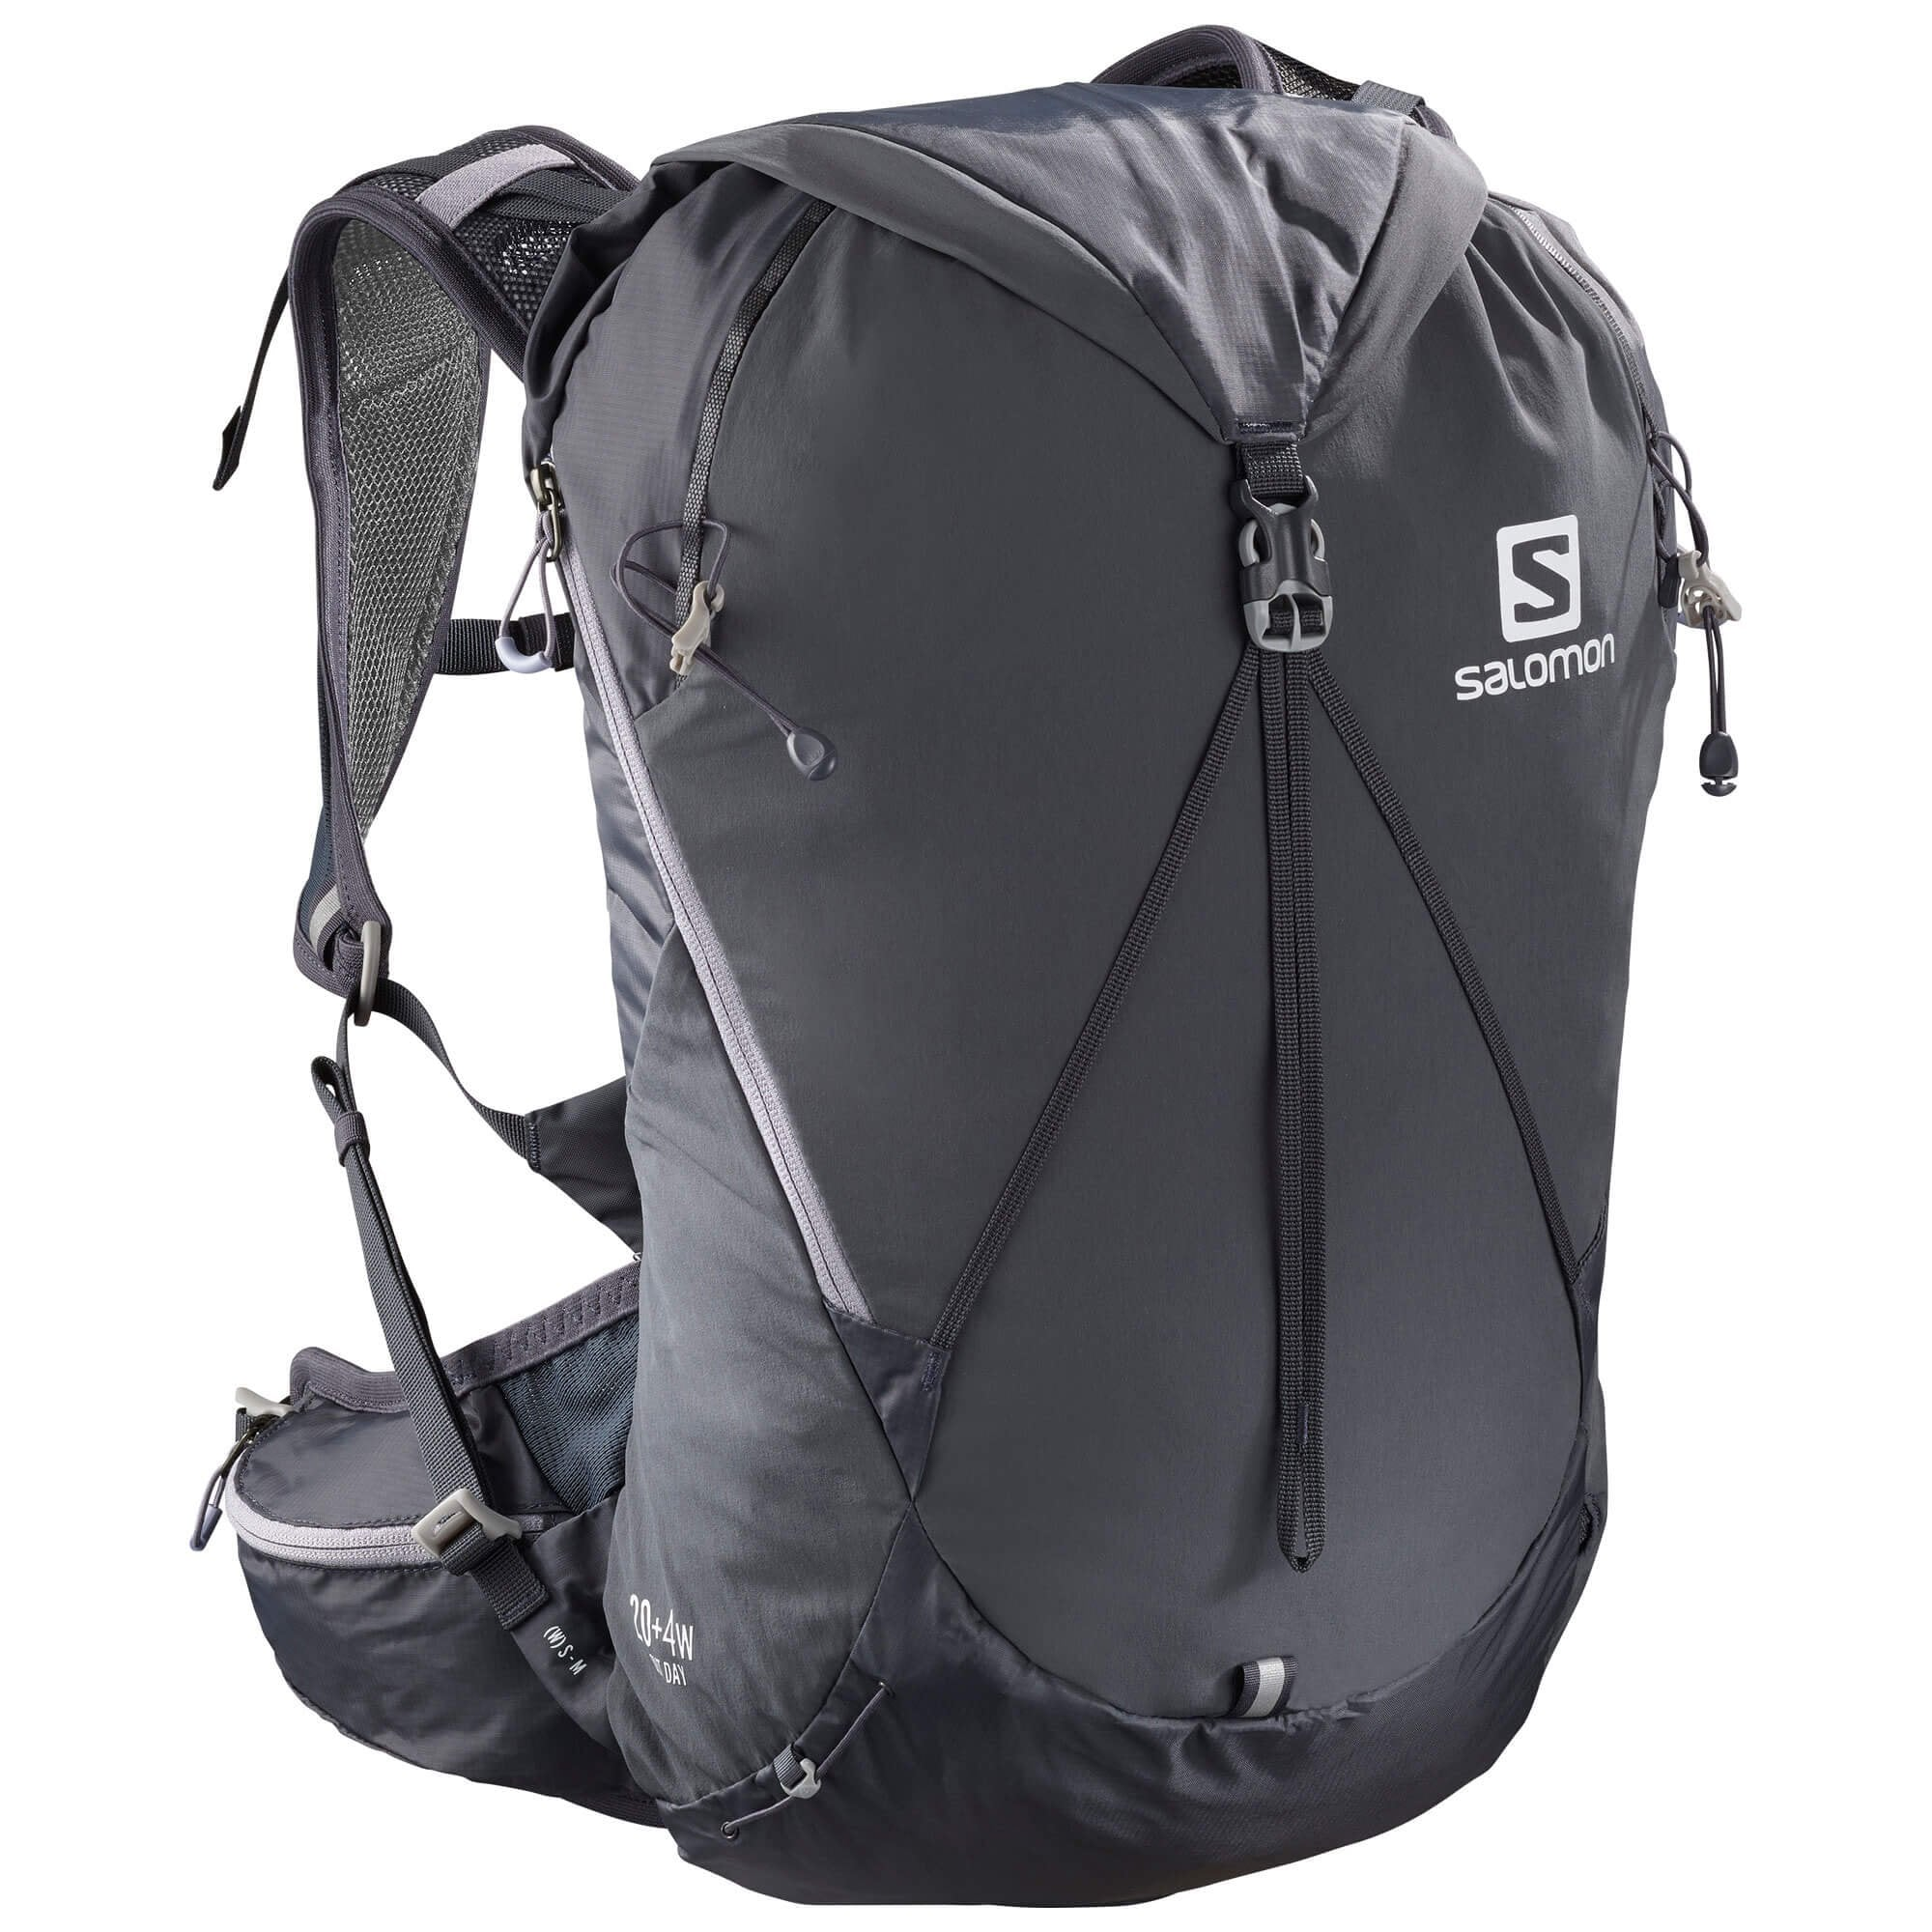 Salomon Womens Out Day 20+4 Rucksack - Equipment from Gaynor Sports UK